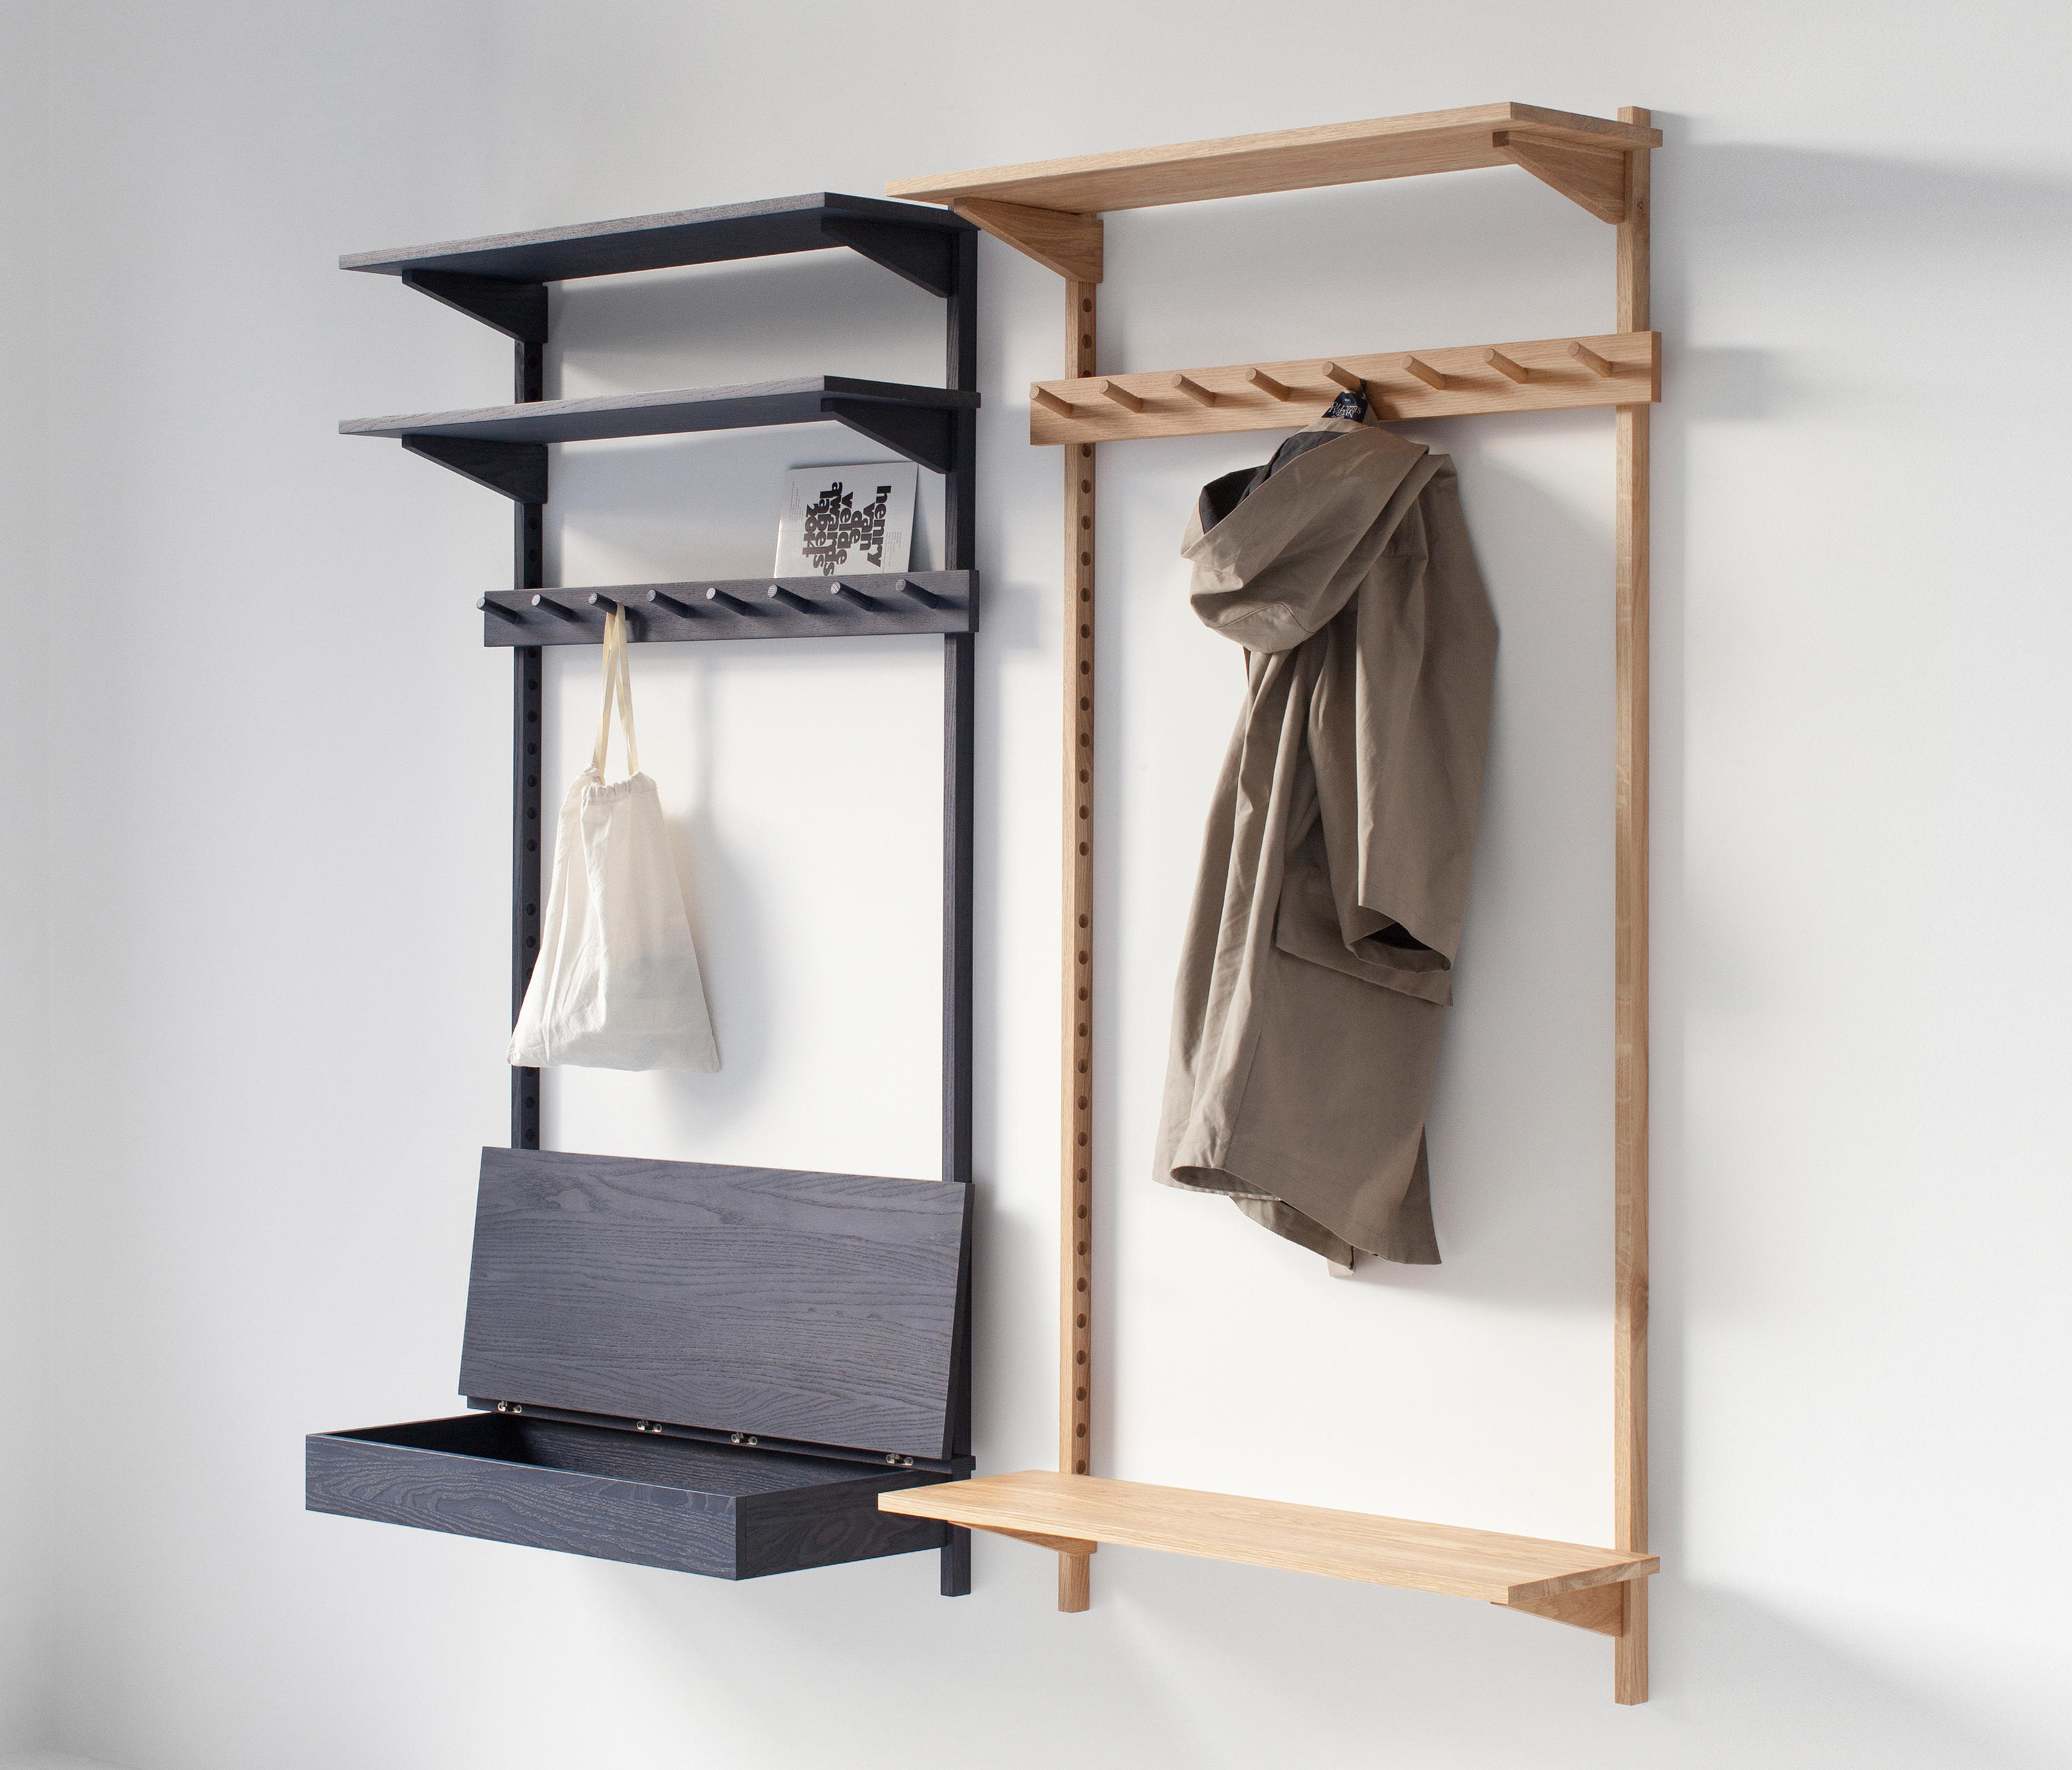 unit coat rack portemanteaux muraux de stattmann neue moebel architonic. Black Bedroom Furniture Sets. Home Design Ideas